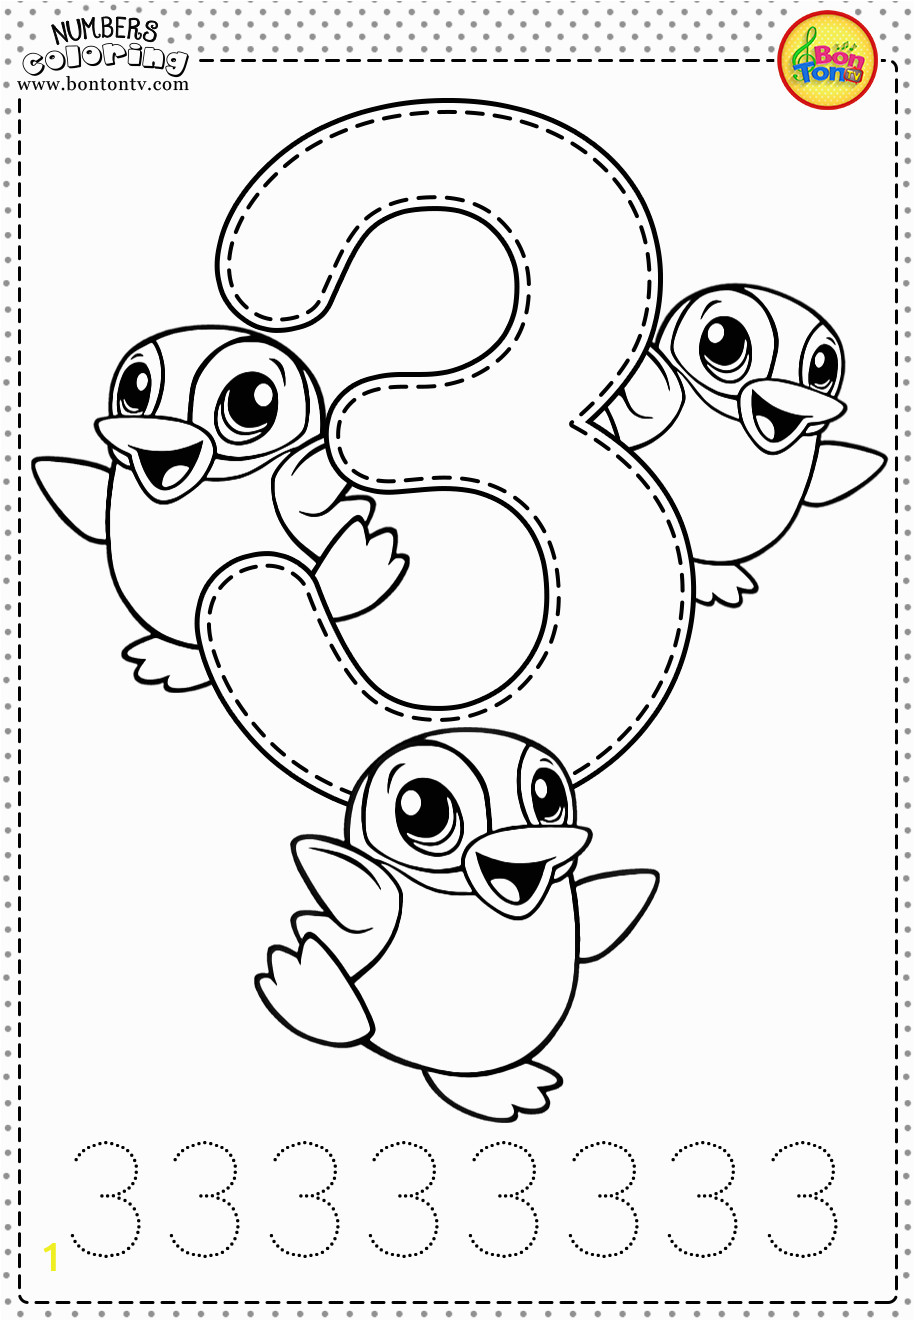 Coloring Pages Of the Number 1 Number 3 Preschool Printables Free Worksheets and